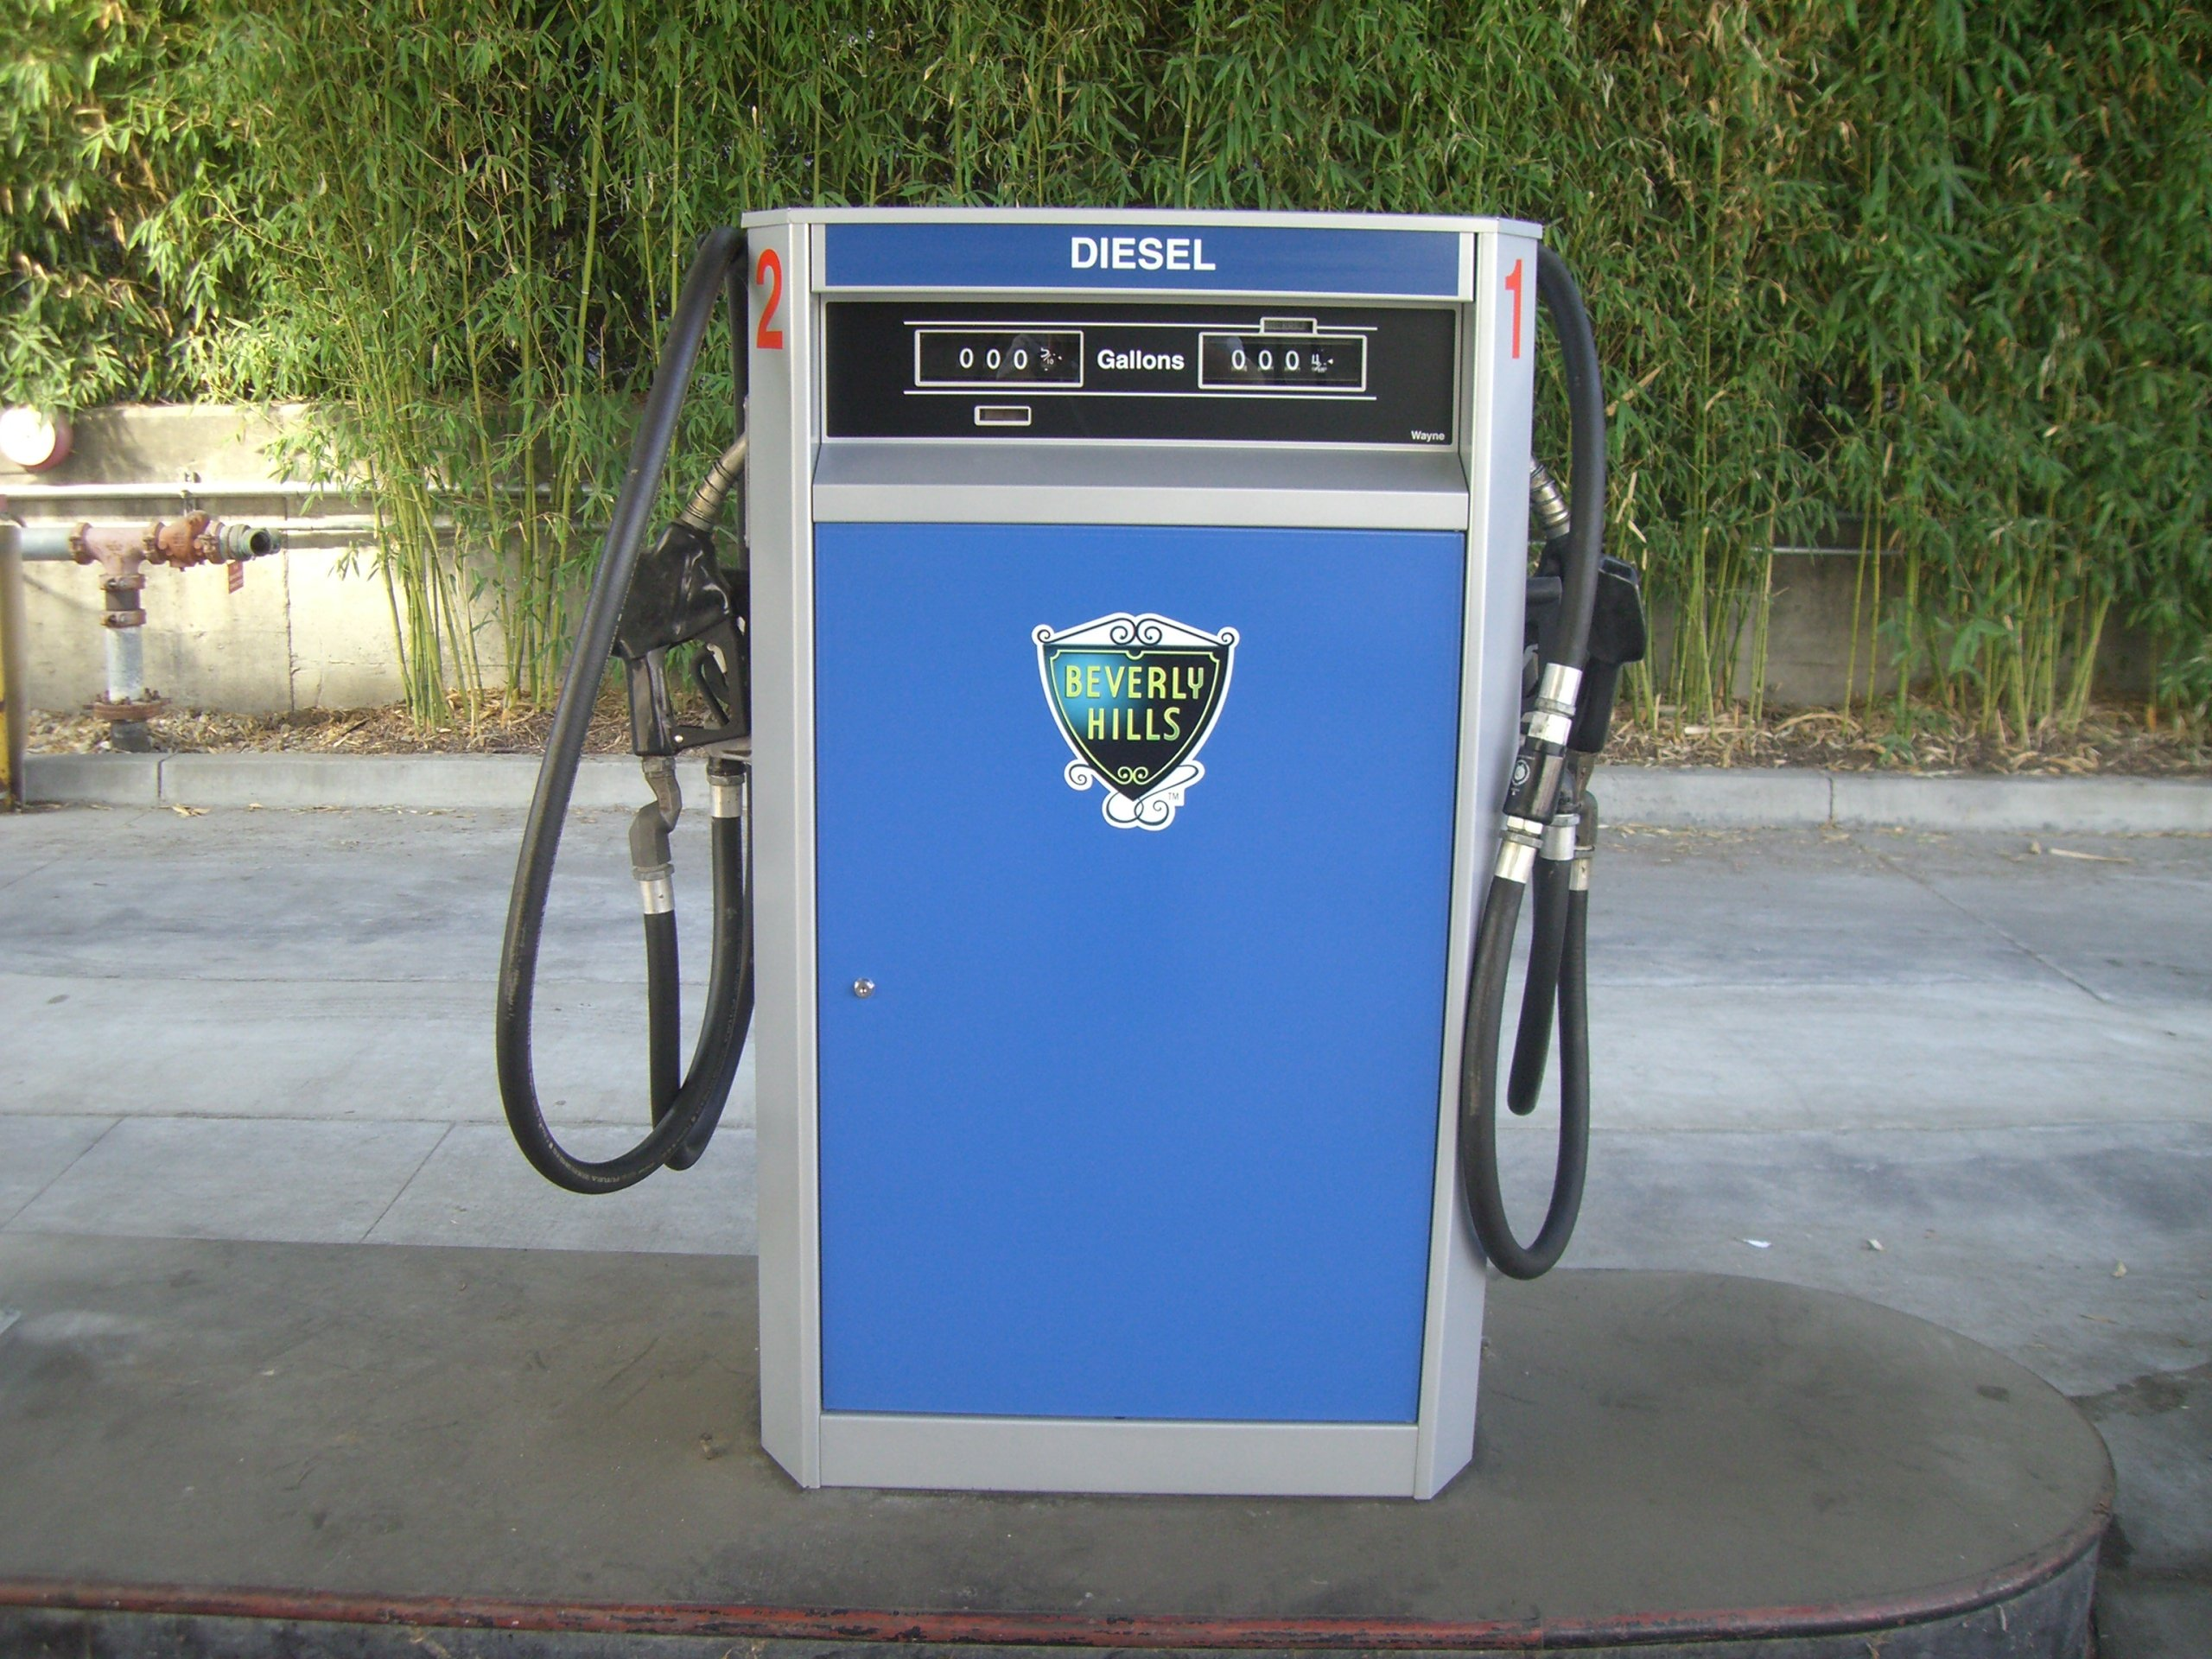 Beverly Hills Adopts Renewable Diesel